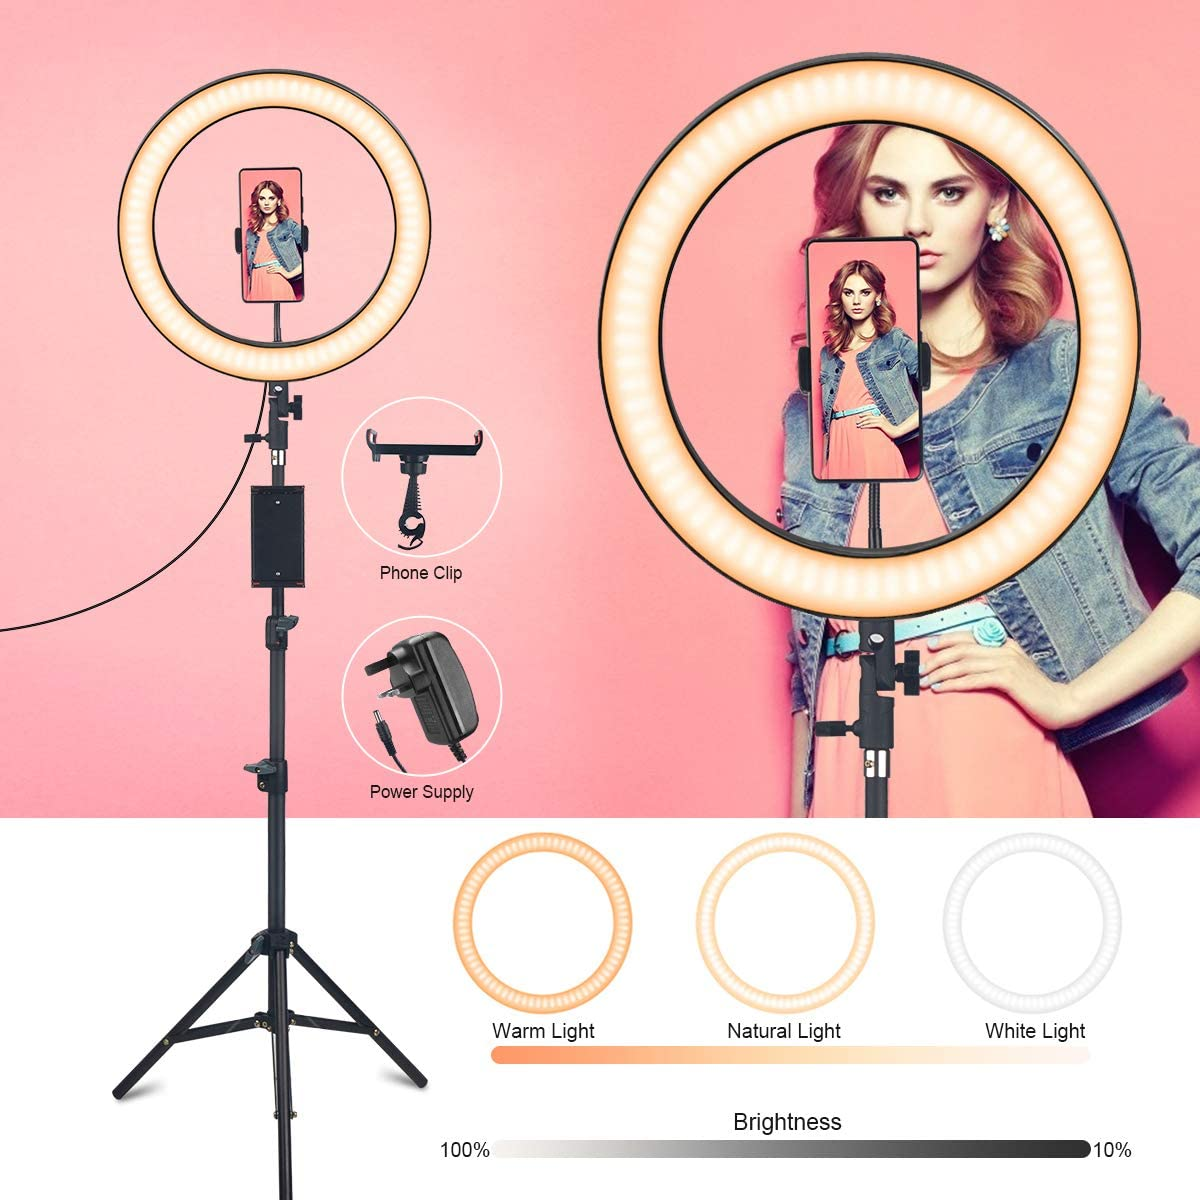 """DMYCO 14"""" LED Ring Light with Tripod Stand & Phone Holder for YouTube Video, Live Streaming, Makeup & Photography Dimmable Desktop Makeup Ring Light with 3 Light Modes & 10 Brightness Level (14inch)"""